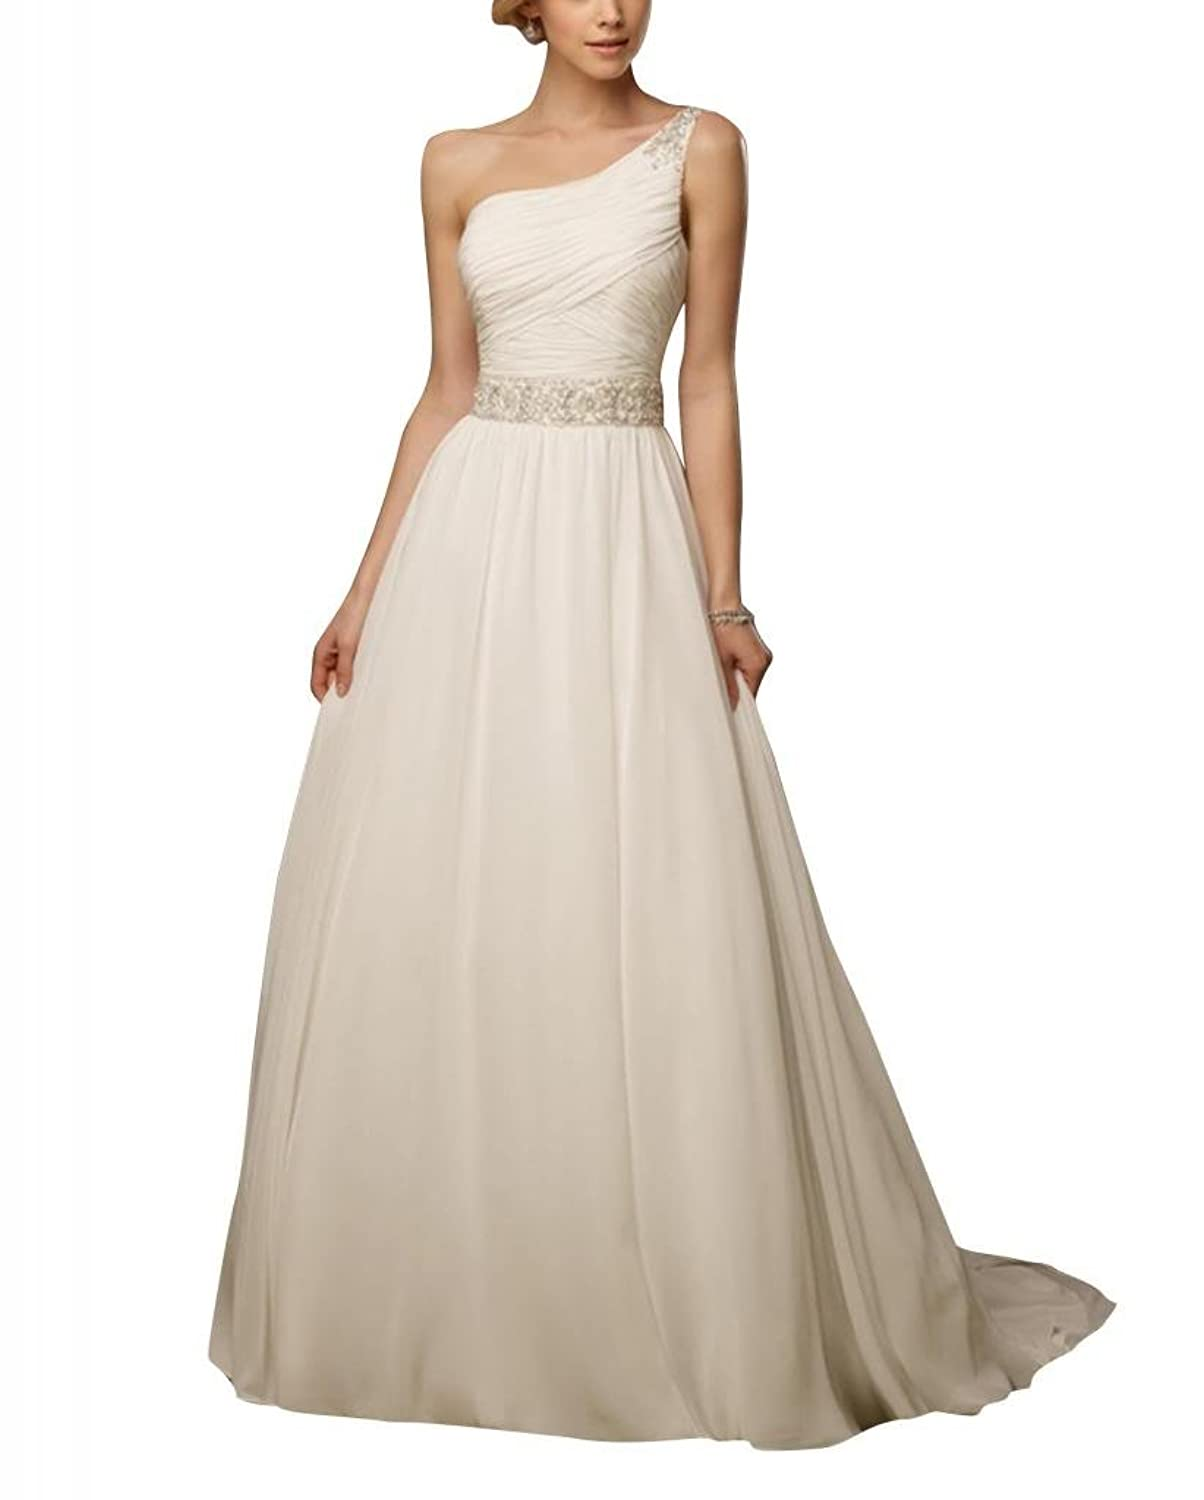 GEORGE BRIDE A Line One Shoulder Natural Waistlne Chapel Train Wedding Dress With Beaded Band